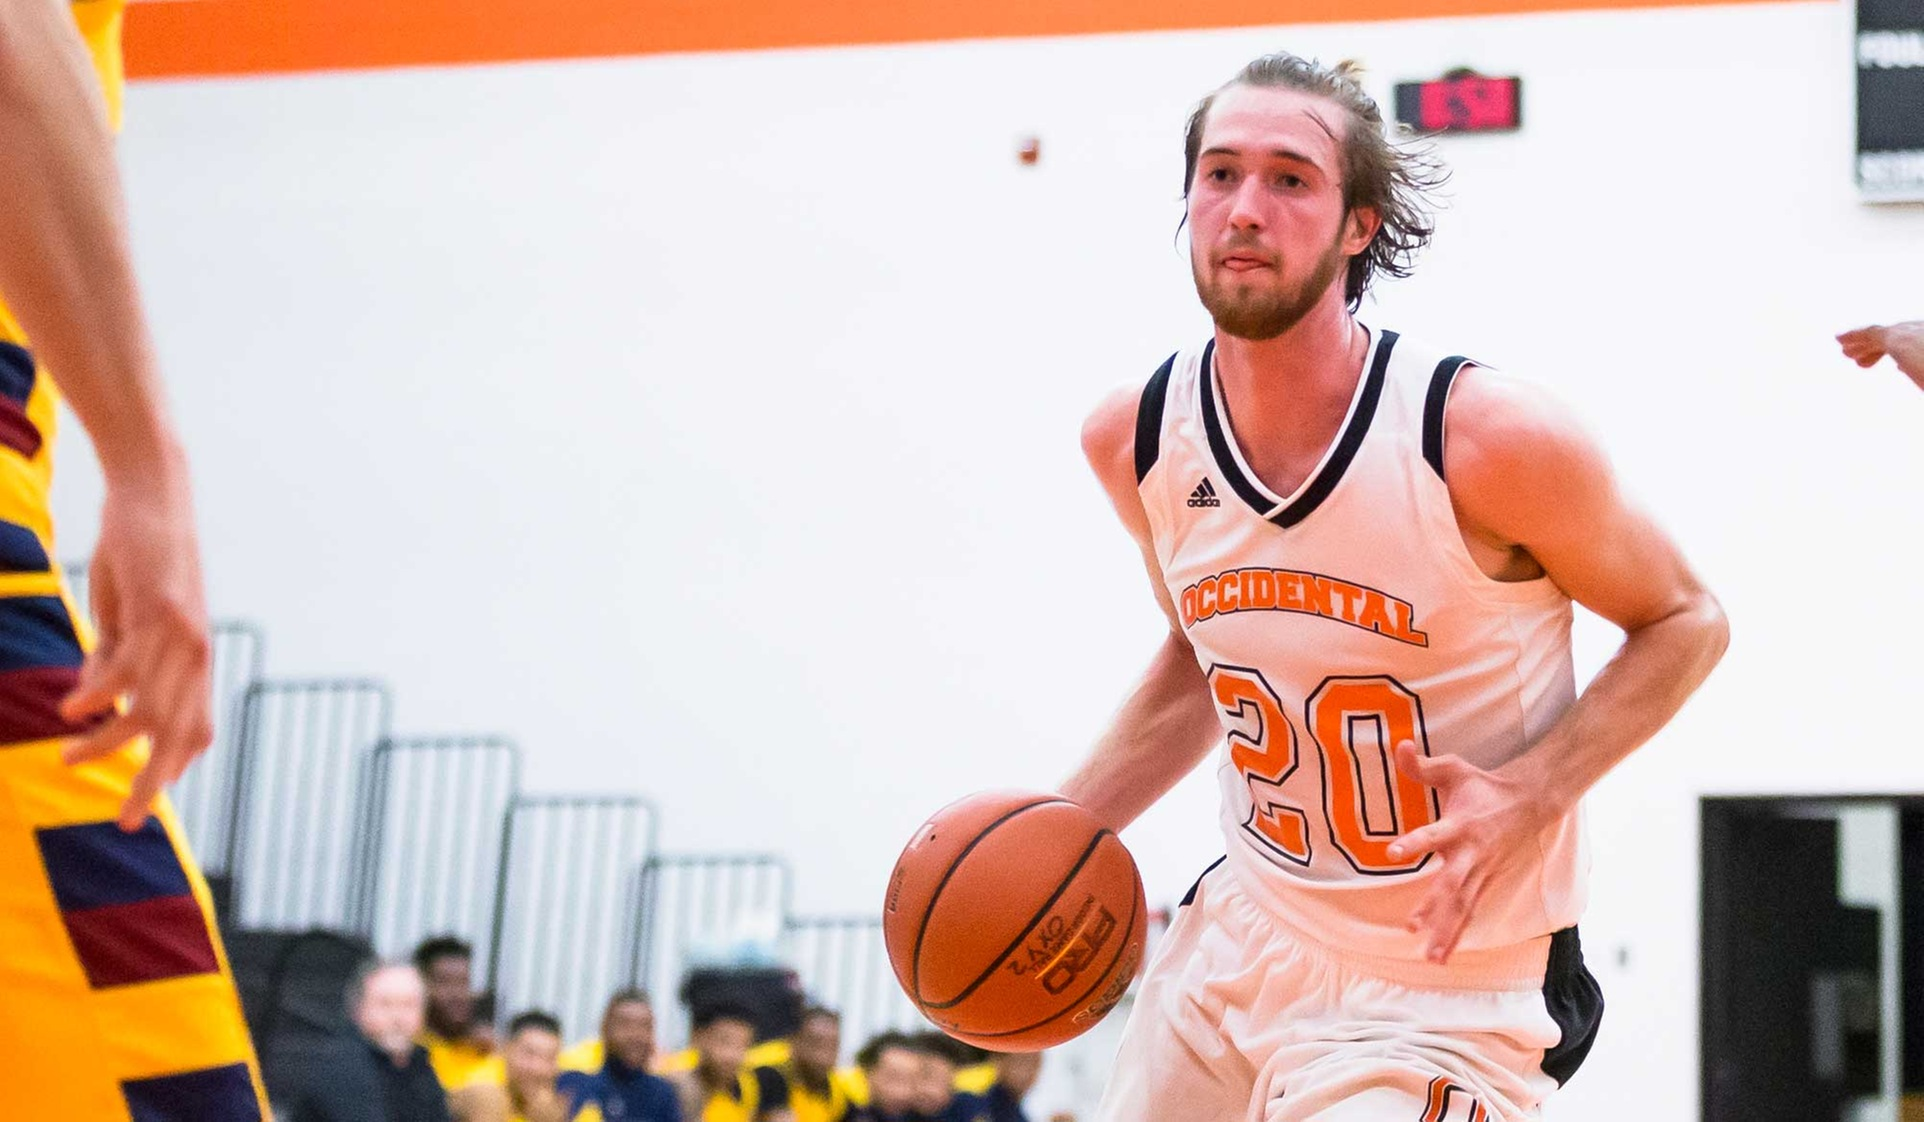 Oxy Opens Round 2 With Win Over La Verne